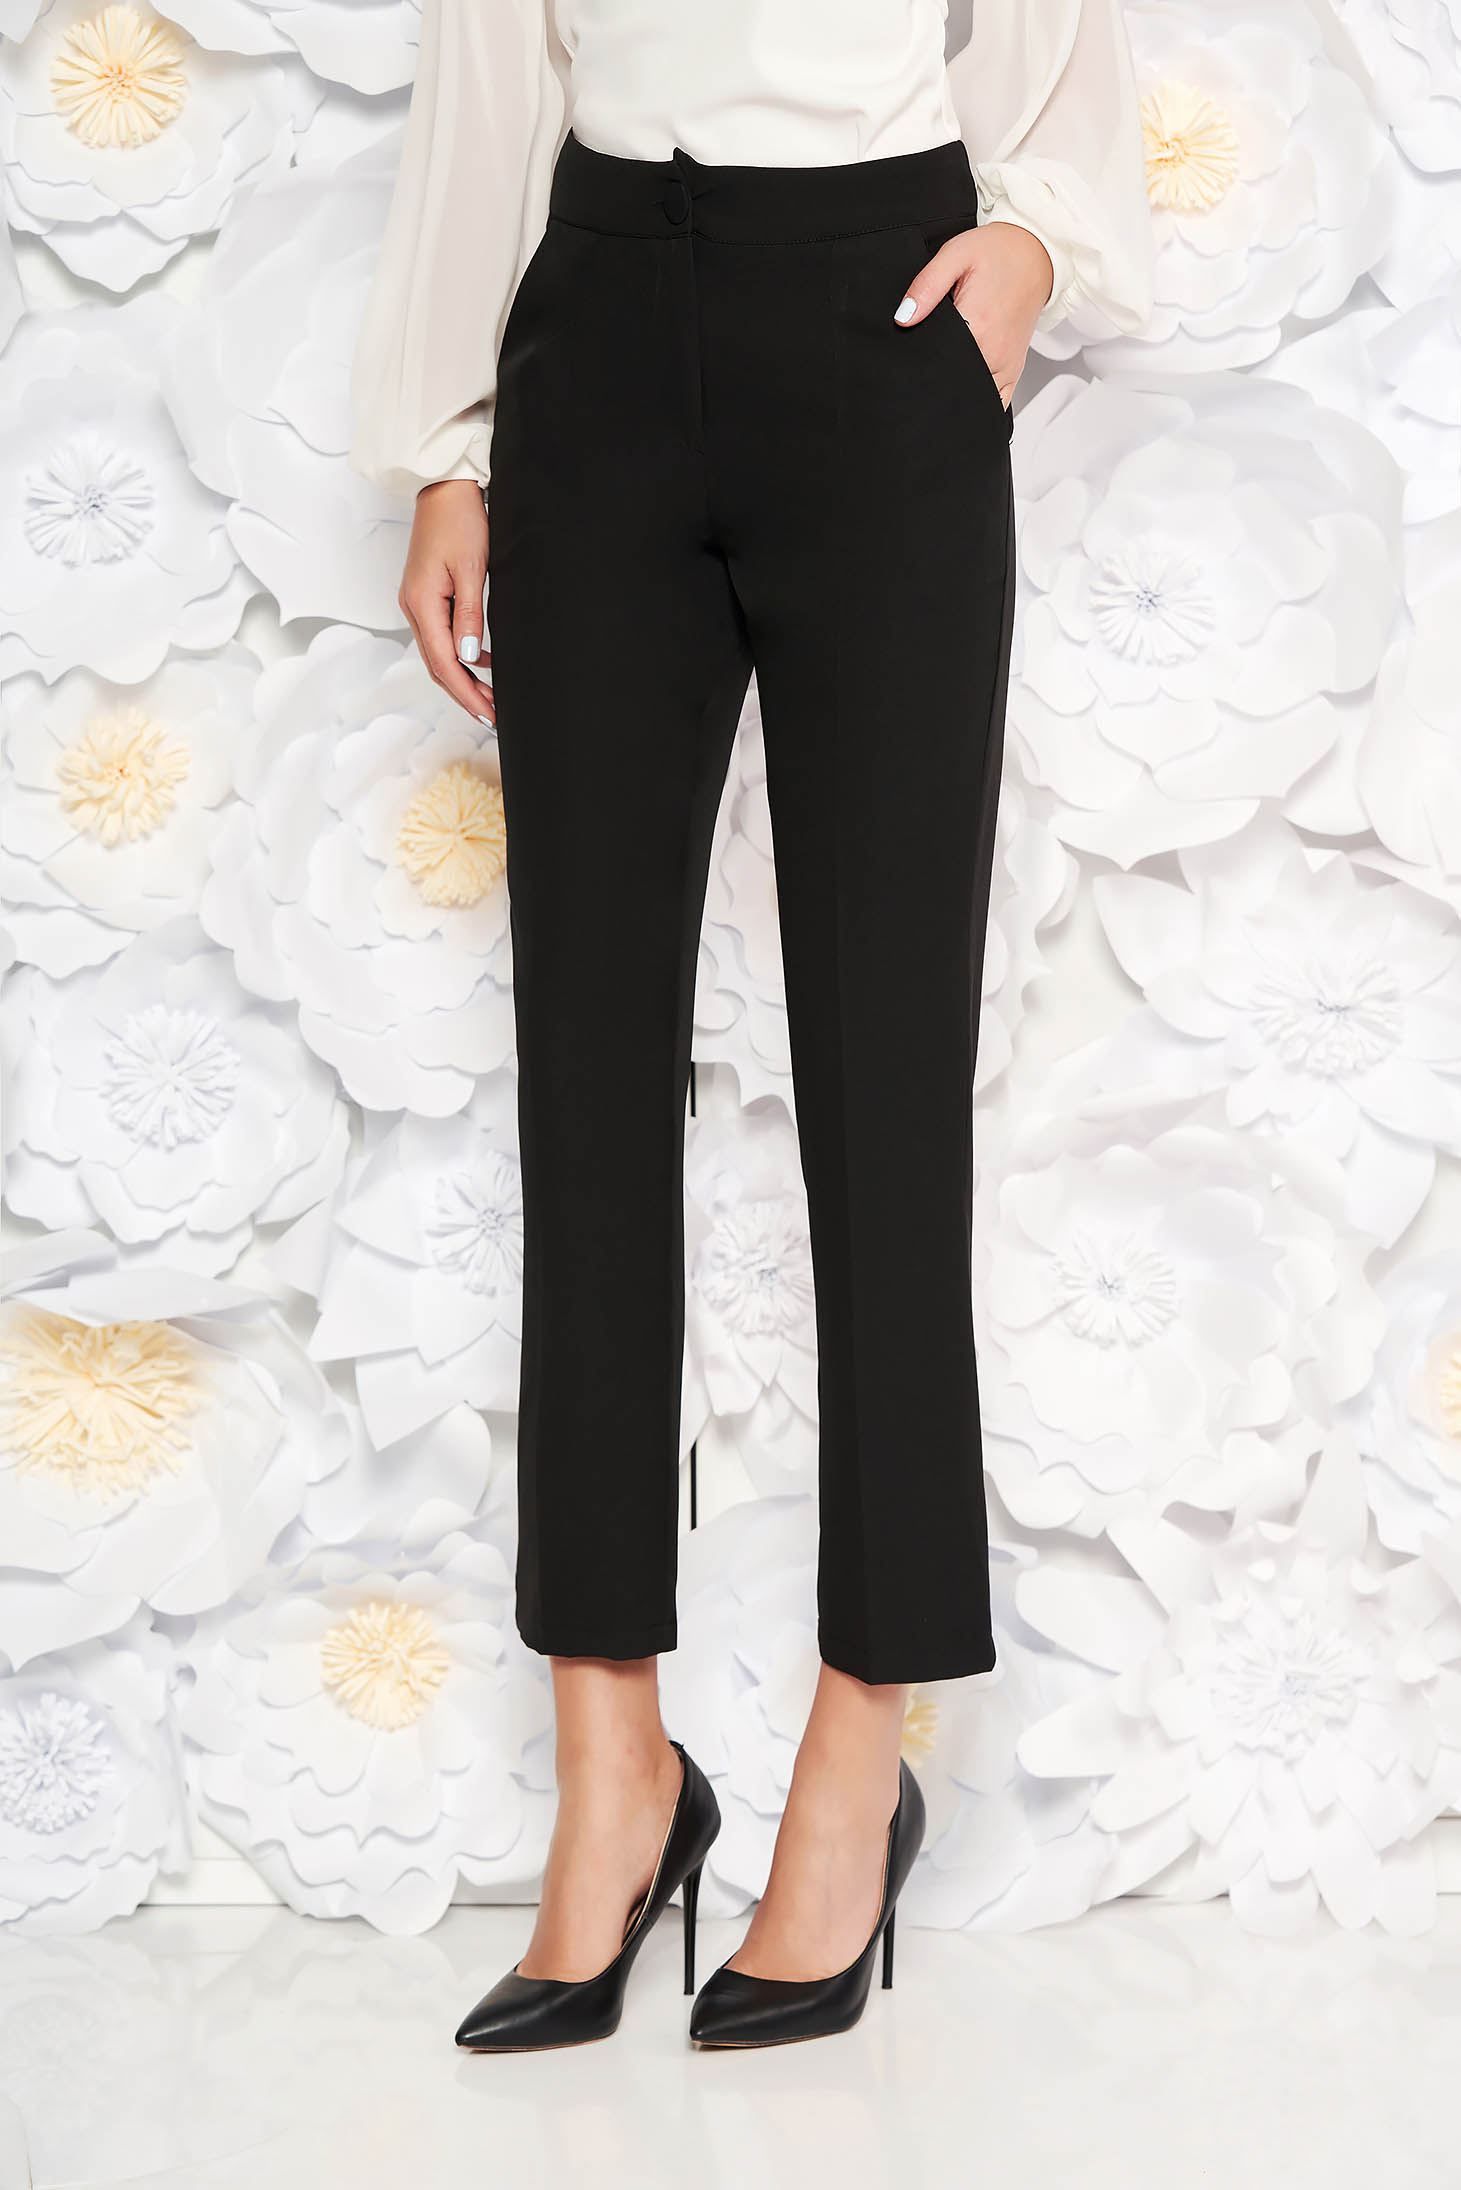 Black office trousers with pockets medium waist slightly elastic fabric with straight cut